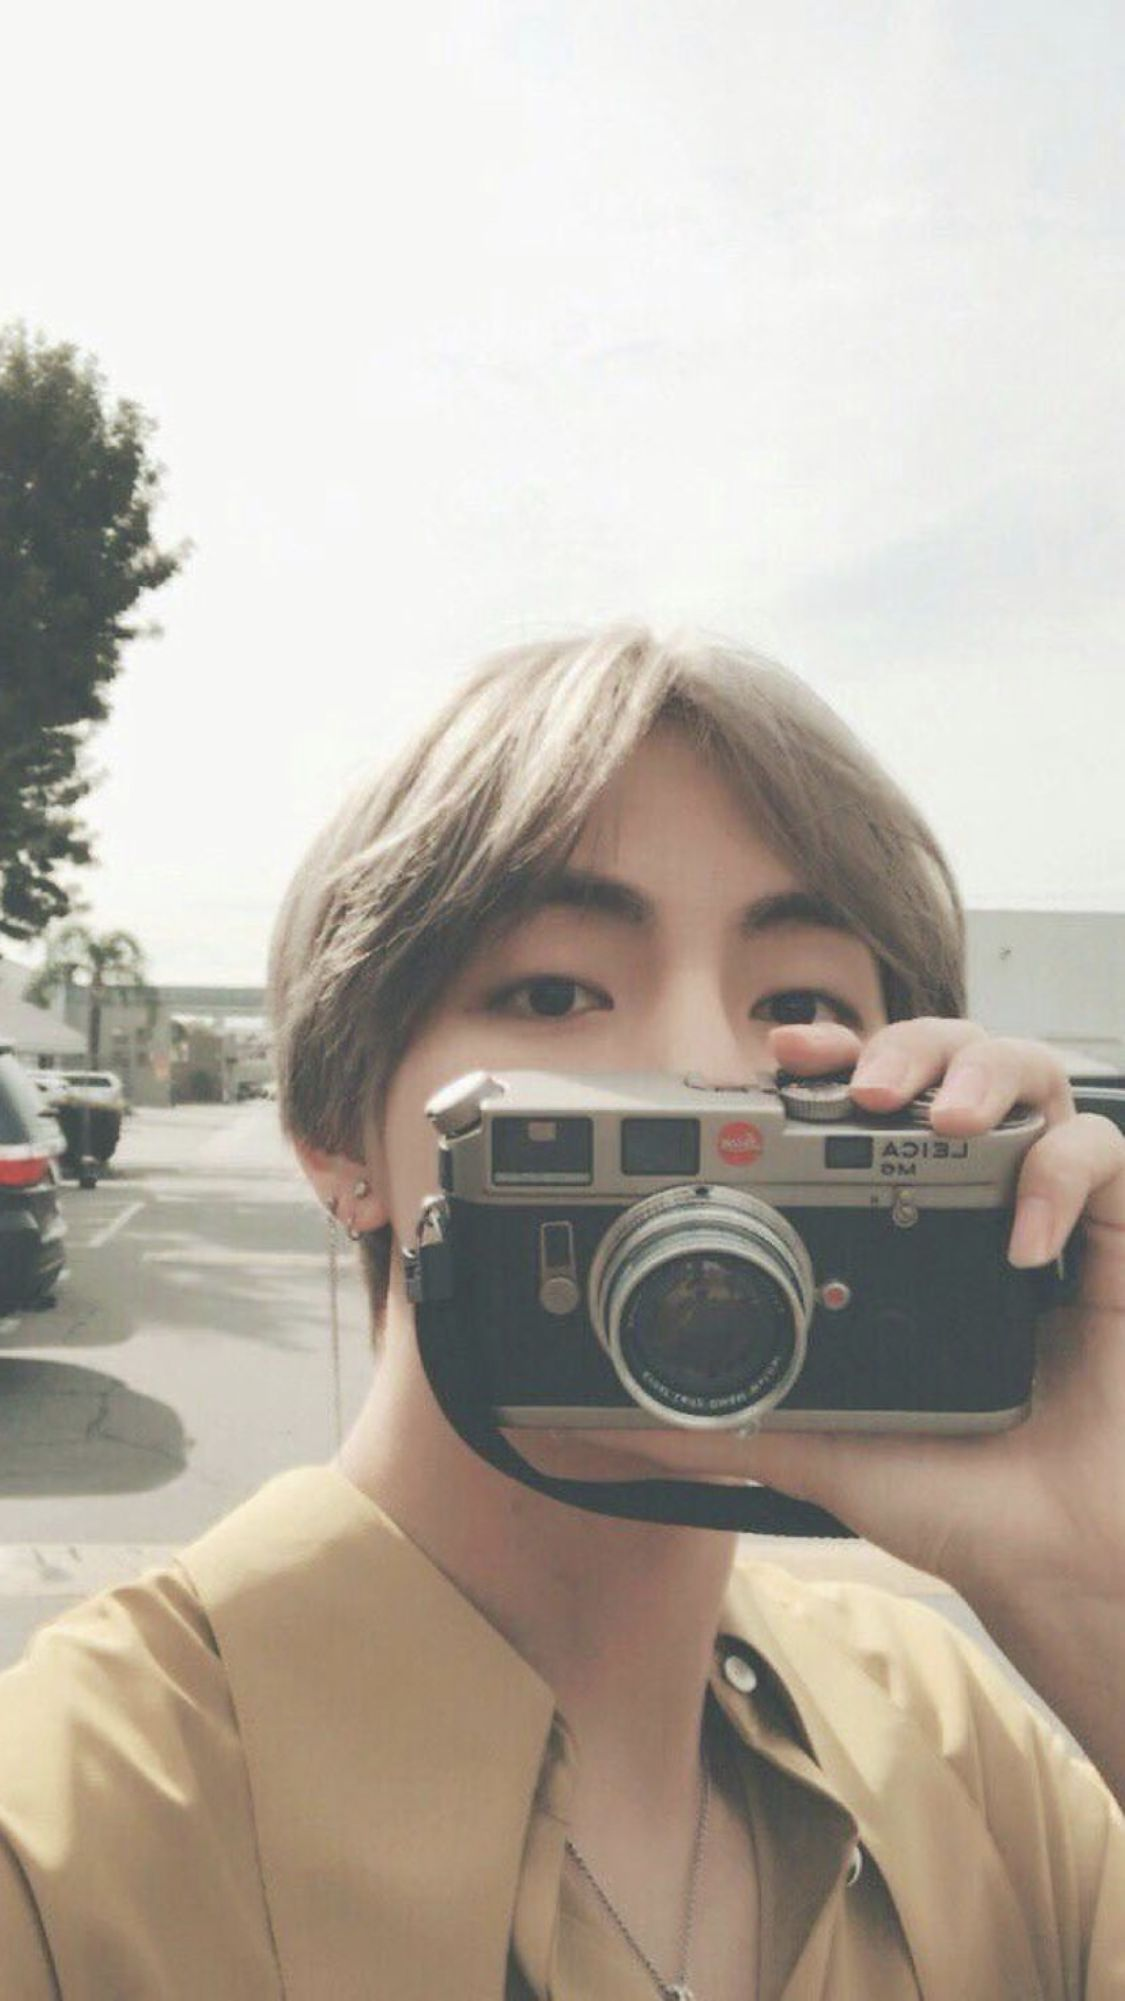 Taehyung V Bts Wallpaper Iphone 361555 Hd Wallpaper